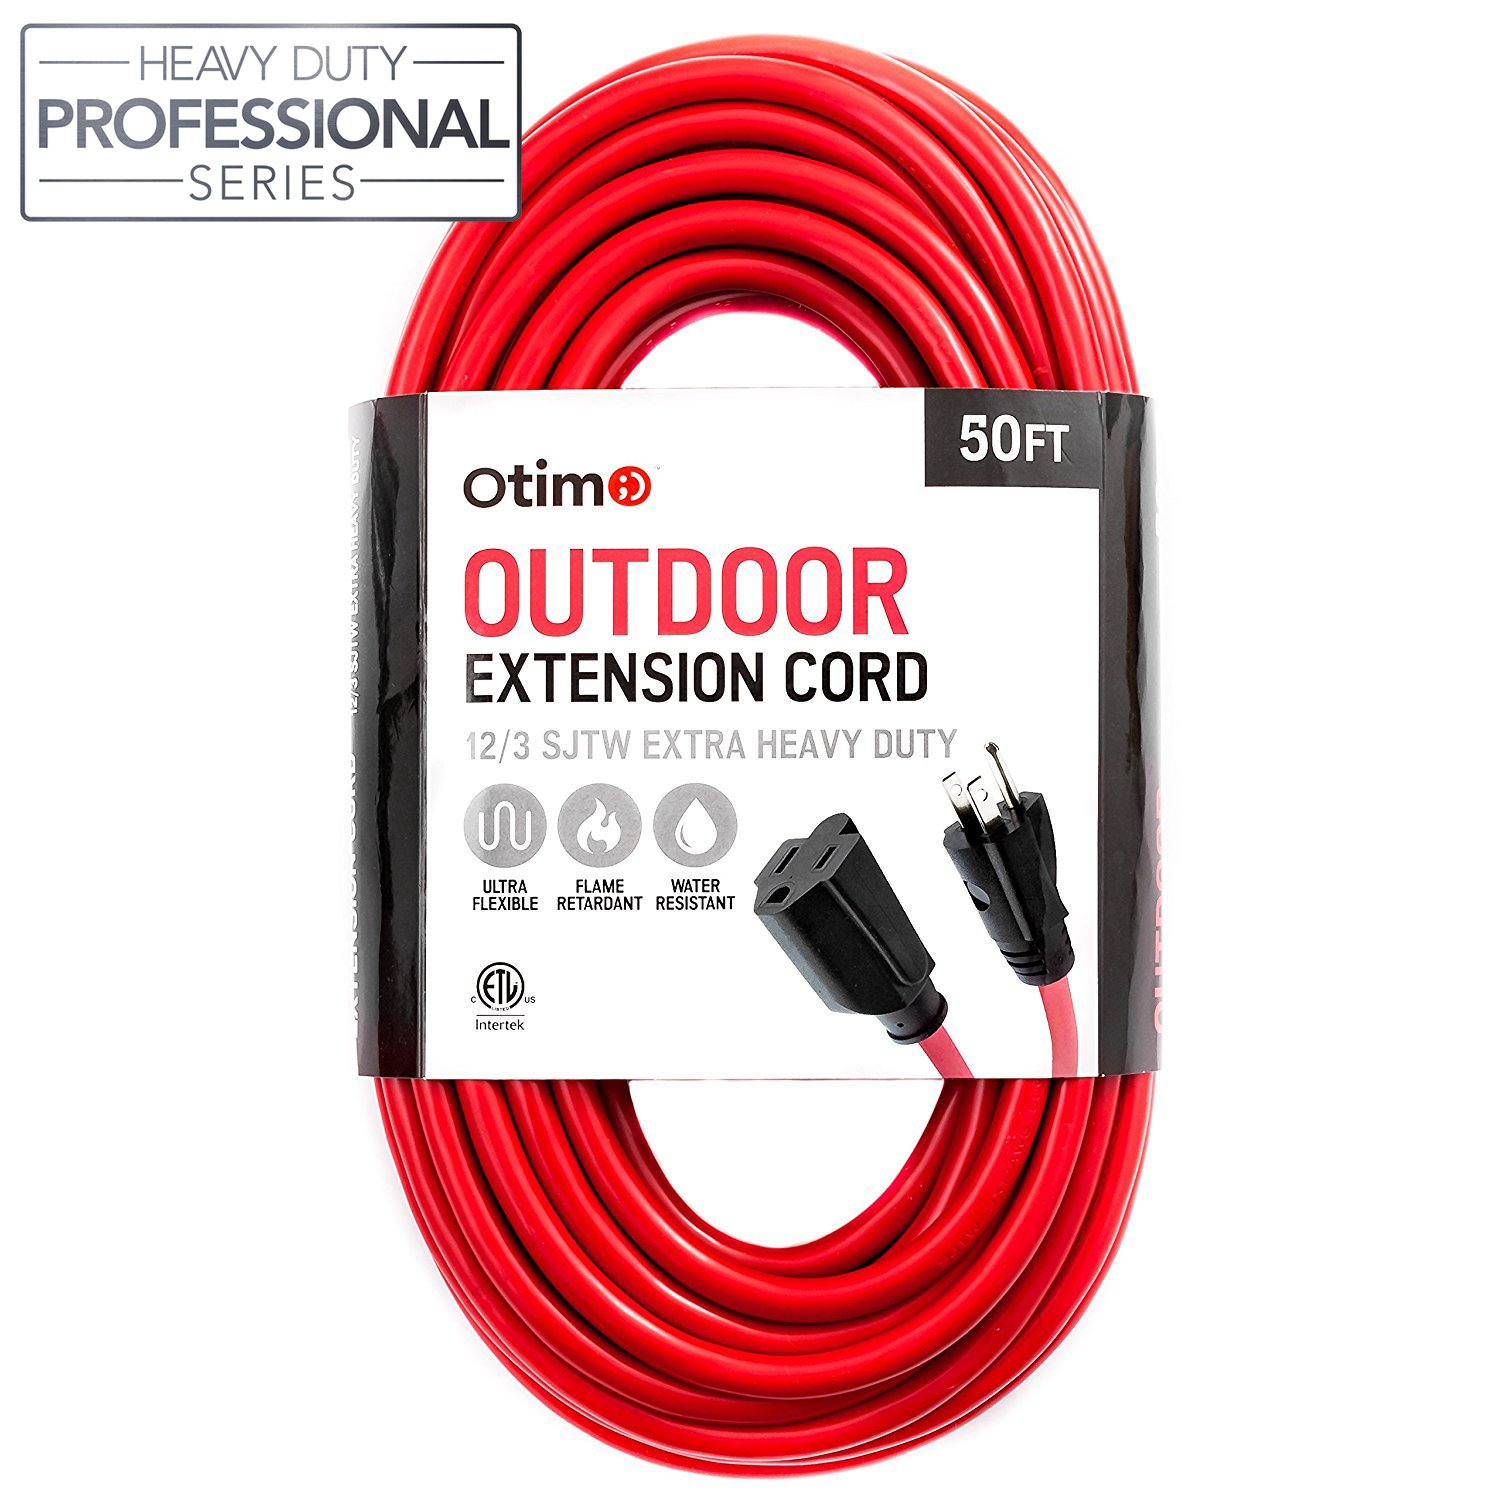 Amazon.com: Otimo 50 Ft 12/3 Outdoor Extra Heavy Duty Extension Cord ...